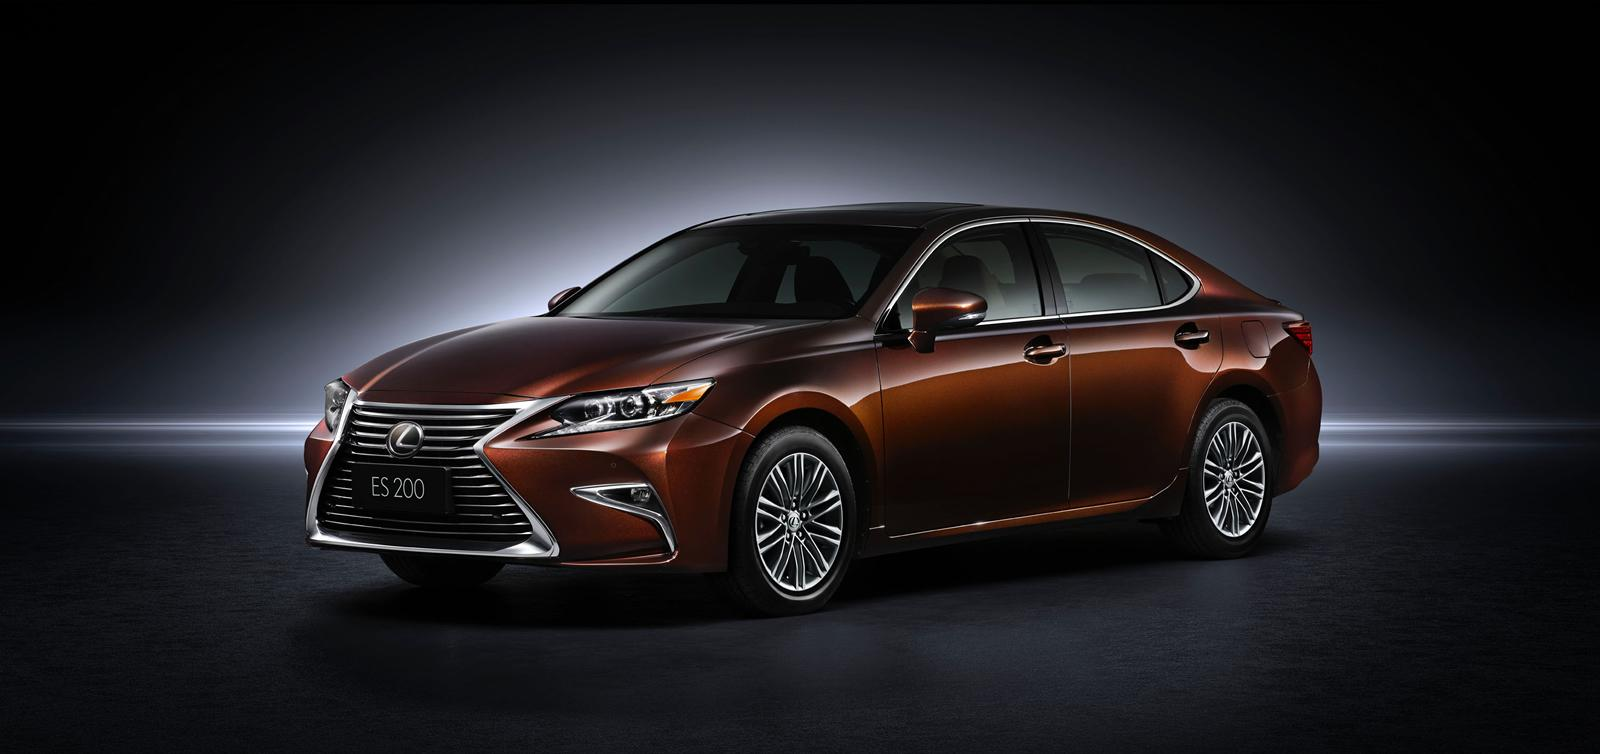 2016 lexus es300h your ultimate and professional car resources. Black Bedroom Furniture Sets. Home Design Ideas